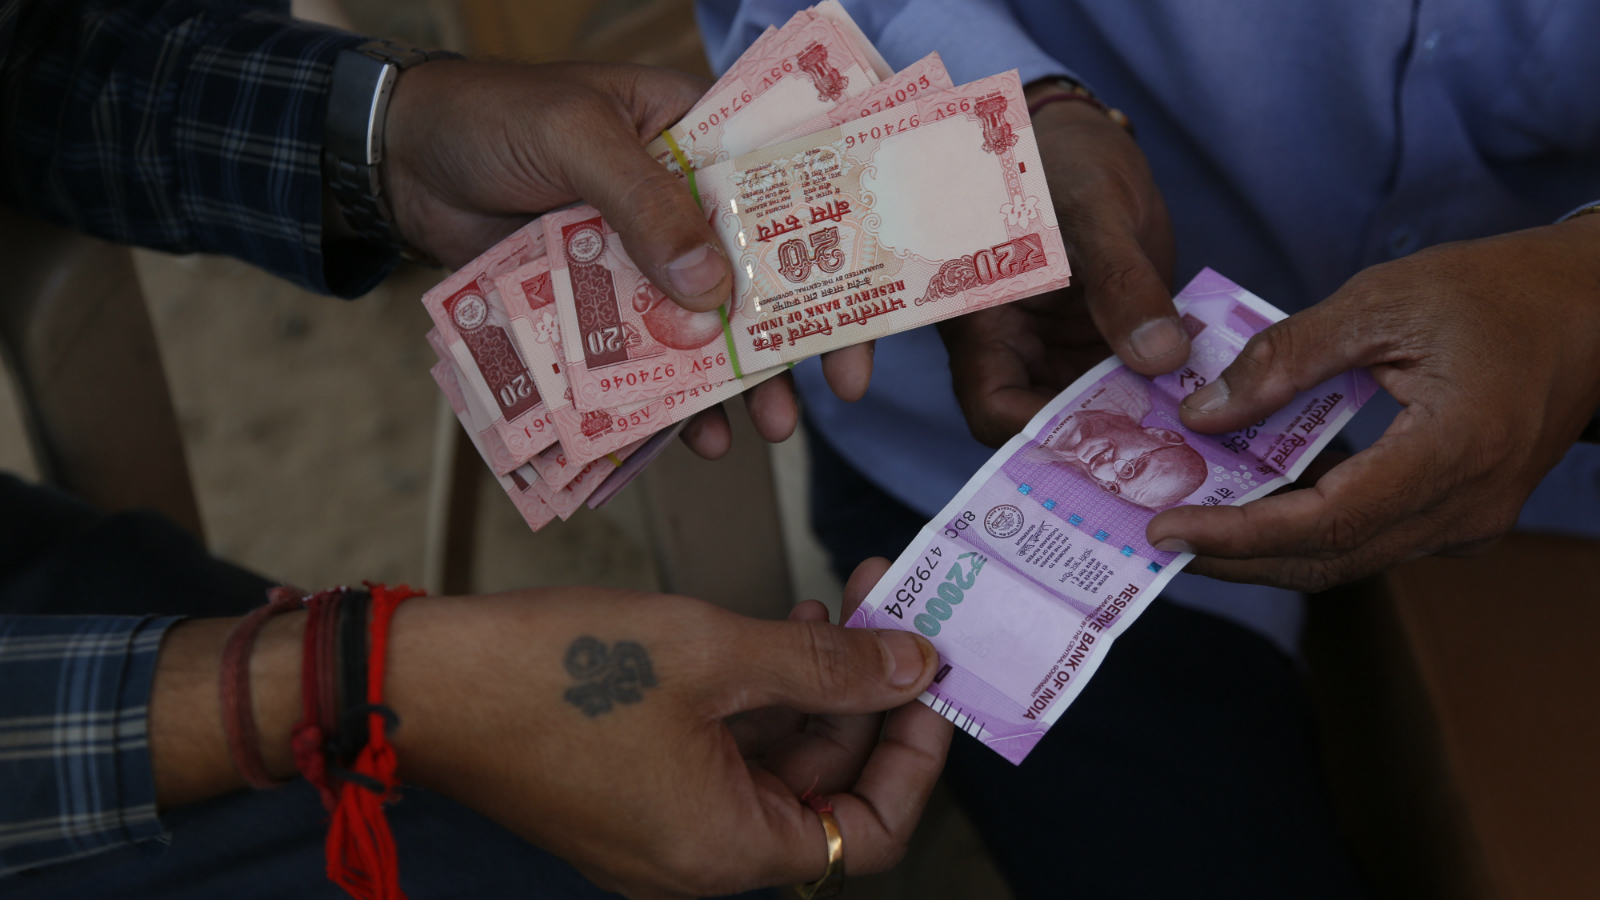 An Indian man, left, gets a high denomination currency note of Indian rupees 2000 exchanged for smaller notes at a roadside stall set up by Shri Jalaram Gaushala, a shelter for cows, in Ahmadabad, India, Friday, Nov. 18, 2016. The cow shelter is helping people change high denomination currency received from banks with the daily donations they receive in low denomination currency notes. The sudden withdrawal of 86 percent of India's currency has left cash in short supply, retail sales stumbling and wholesale markets in turmoil.